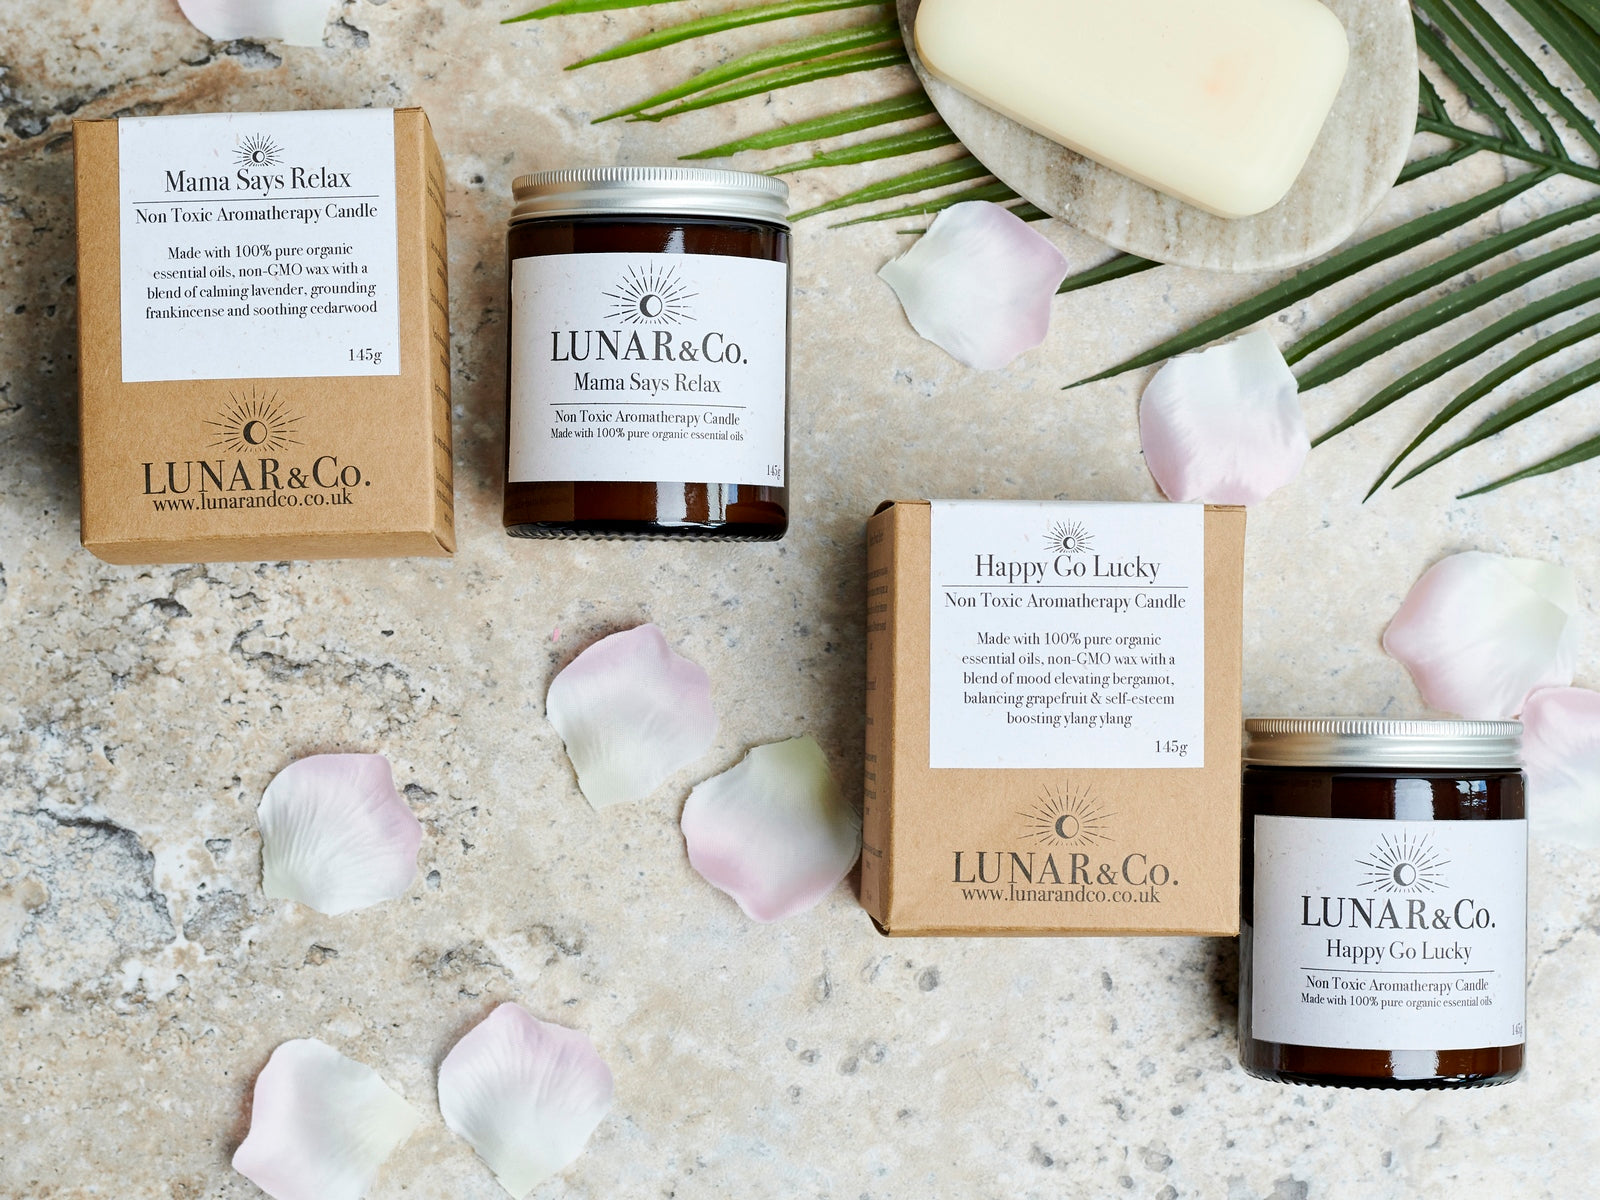 Lunar&Co. aromatherapy candles